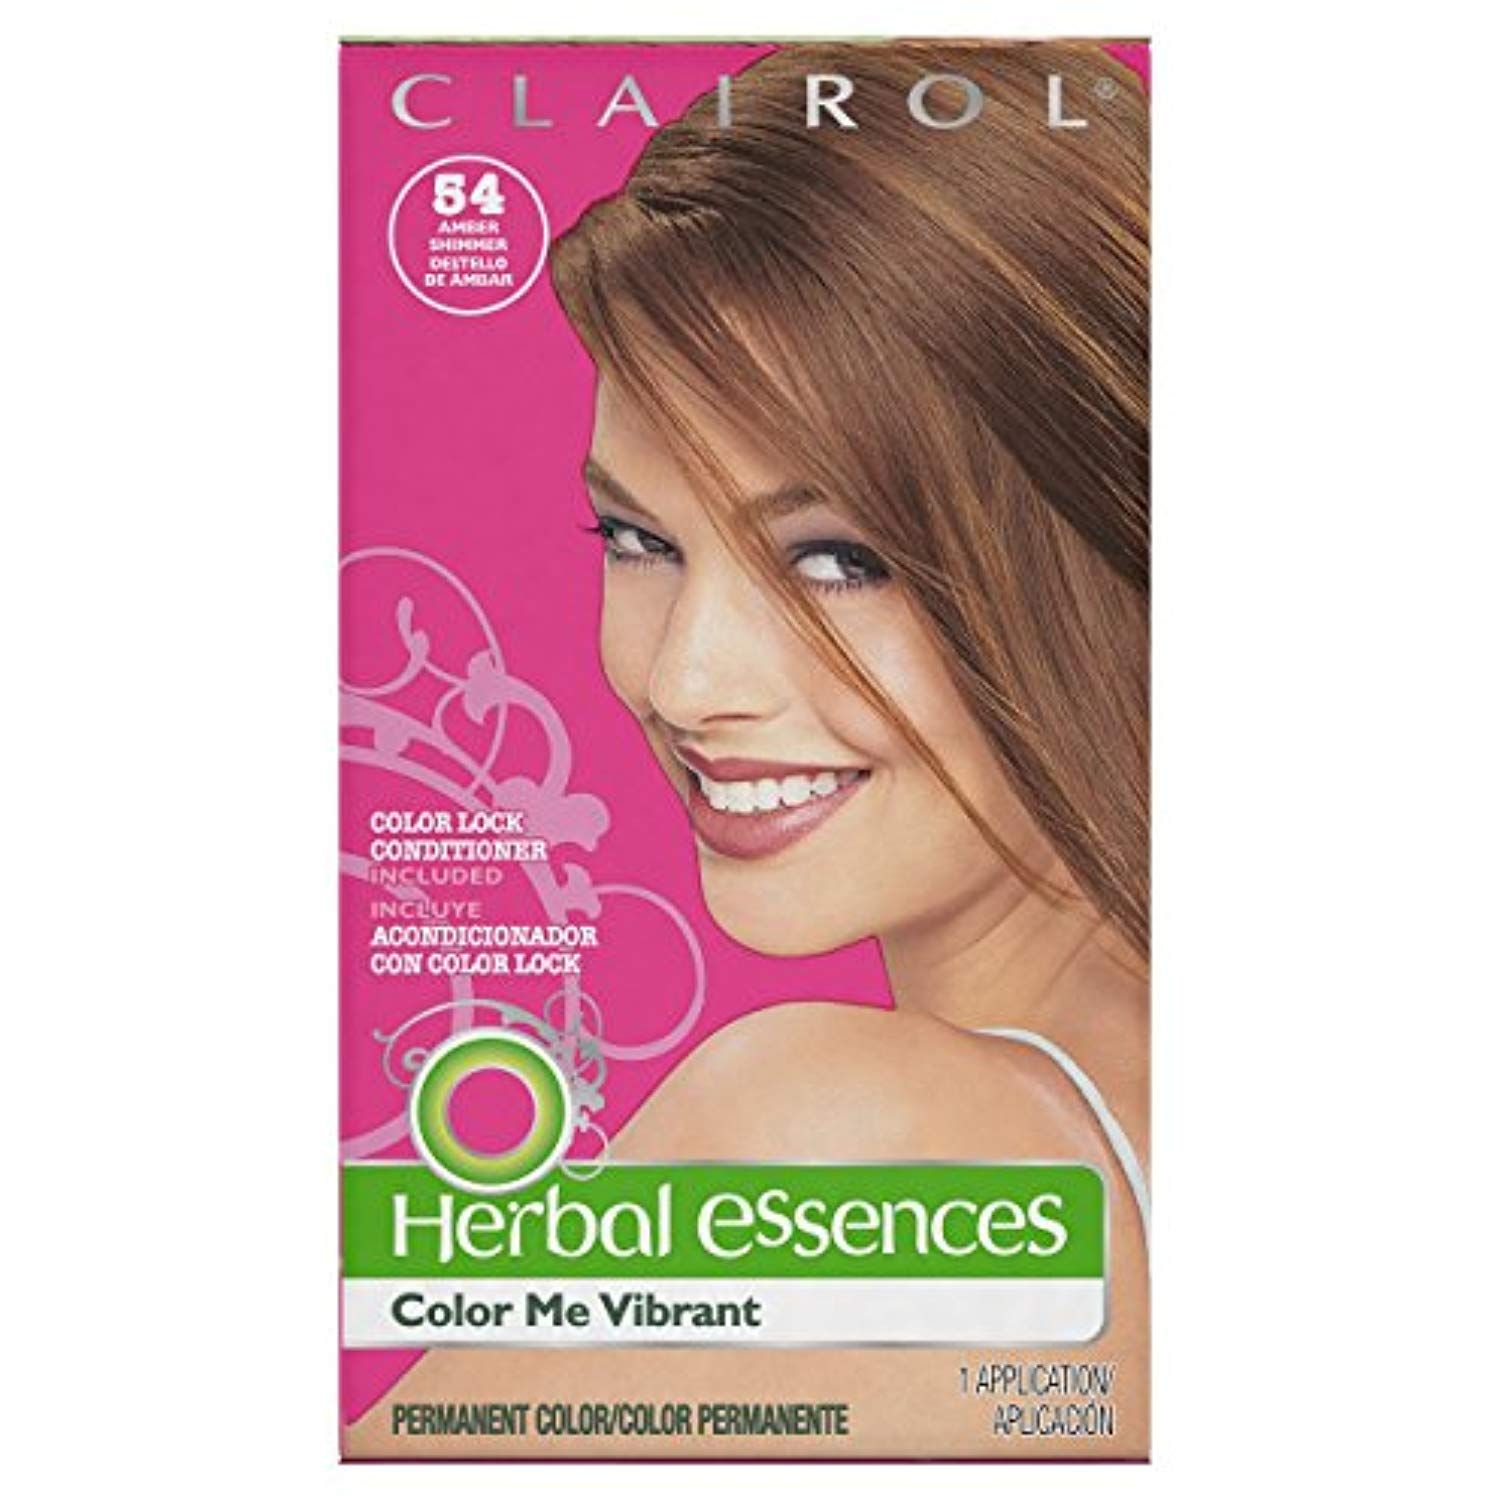 Herbal Essences Color Me Vibrant Permanent Hair Color 054 Amber Shimmer 1 Kit Packaging May Vary More Info C Herbal Essences Permanent Hair Color Color Me